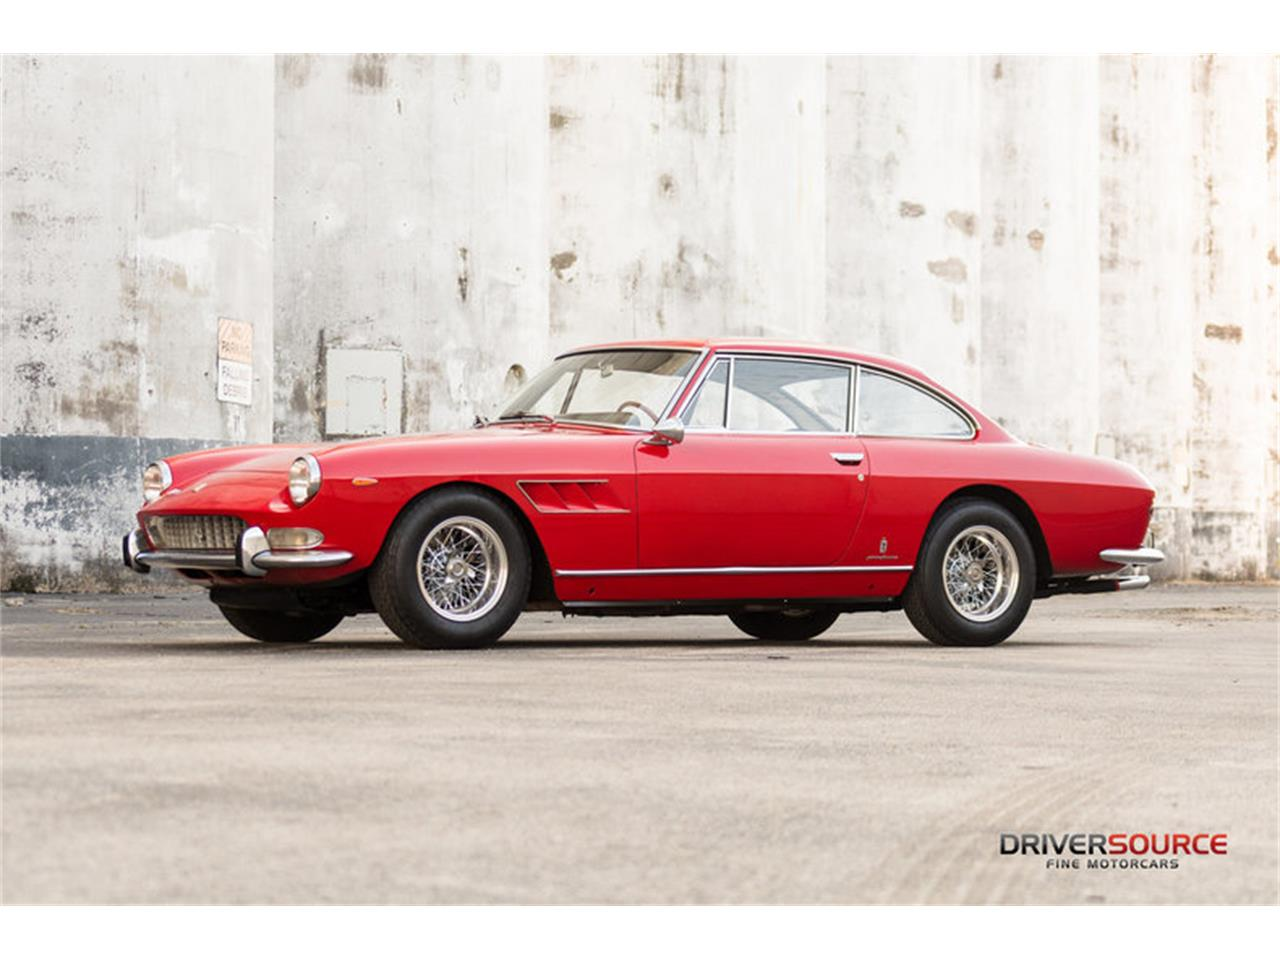 Large Picture of 1966 330 GT - $292,500.00 Offered by Driversource - MH2U